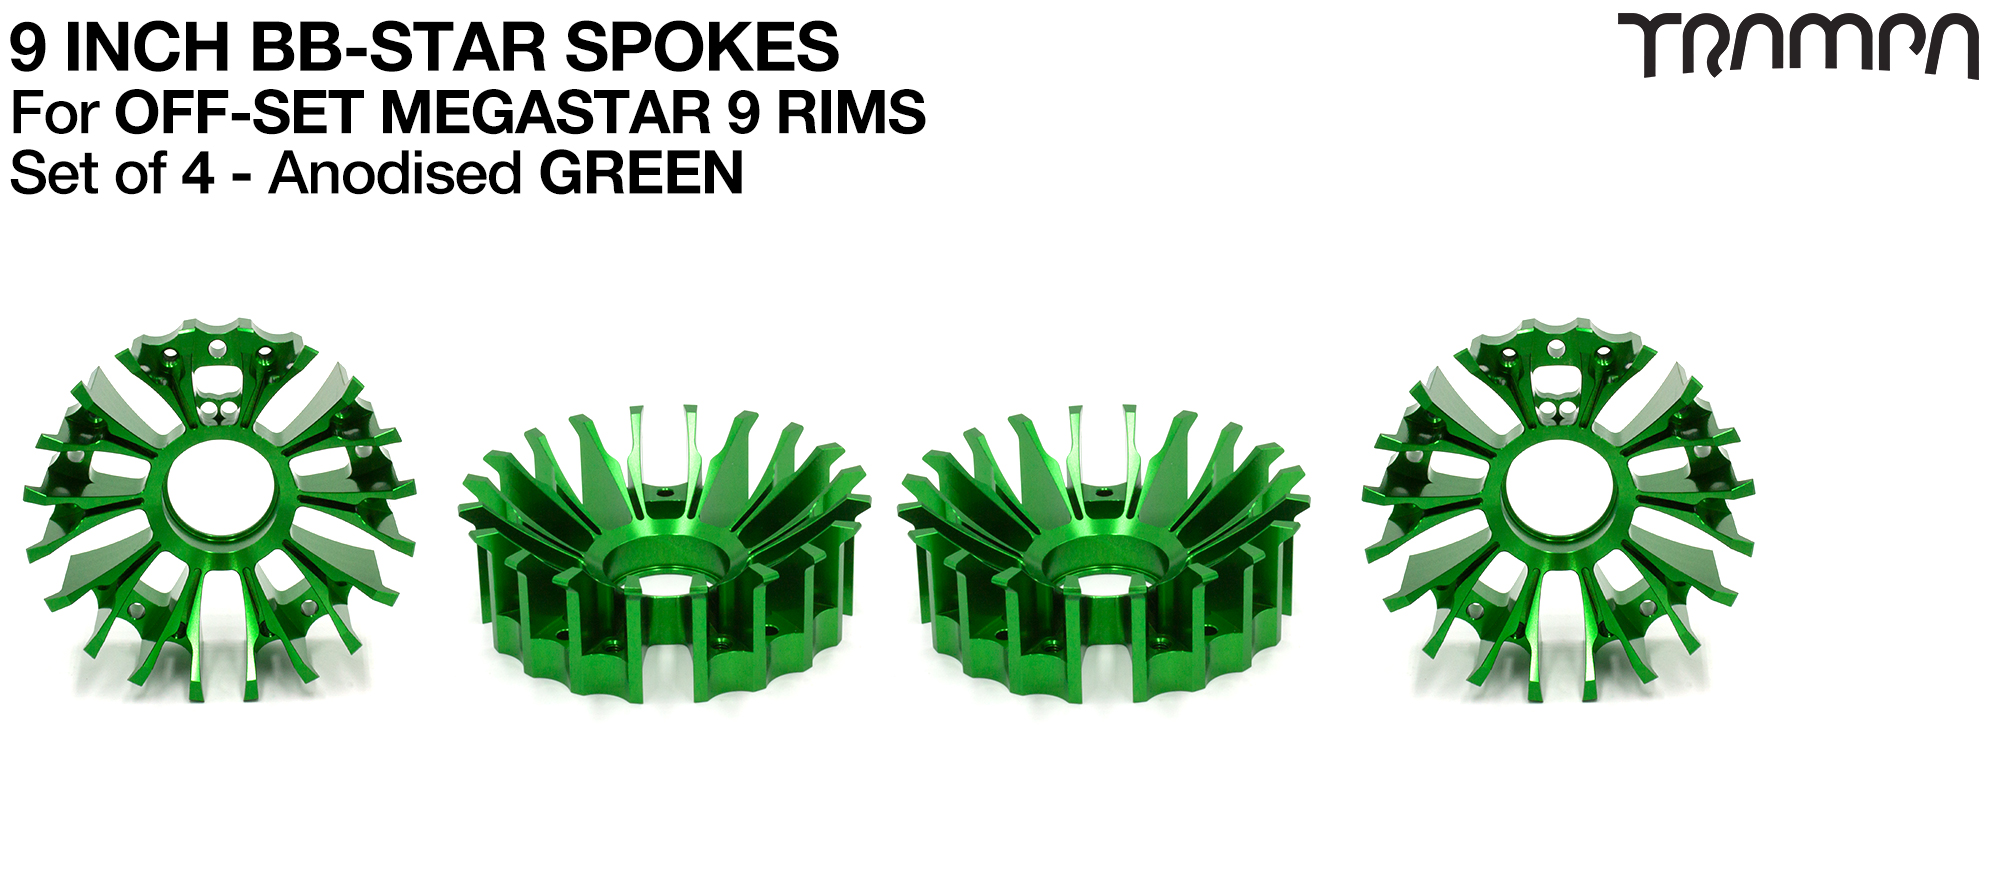 BBStar Spoke for SUPERSTAR or any size MEGASTAR rims - Extruded T6 Aluminium Heat treated & CNC Precision milled -  GREEN